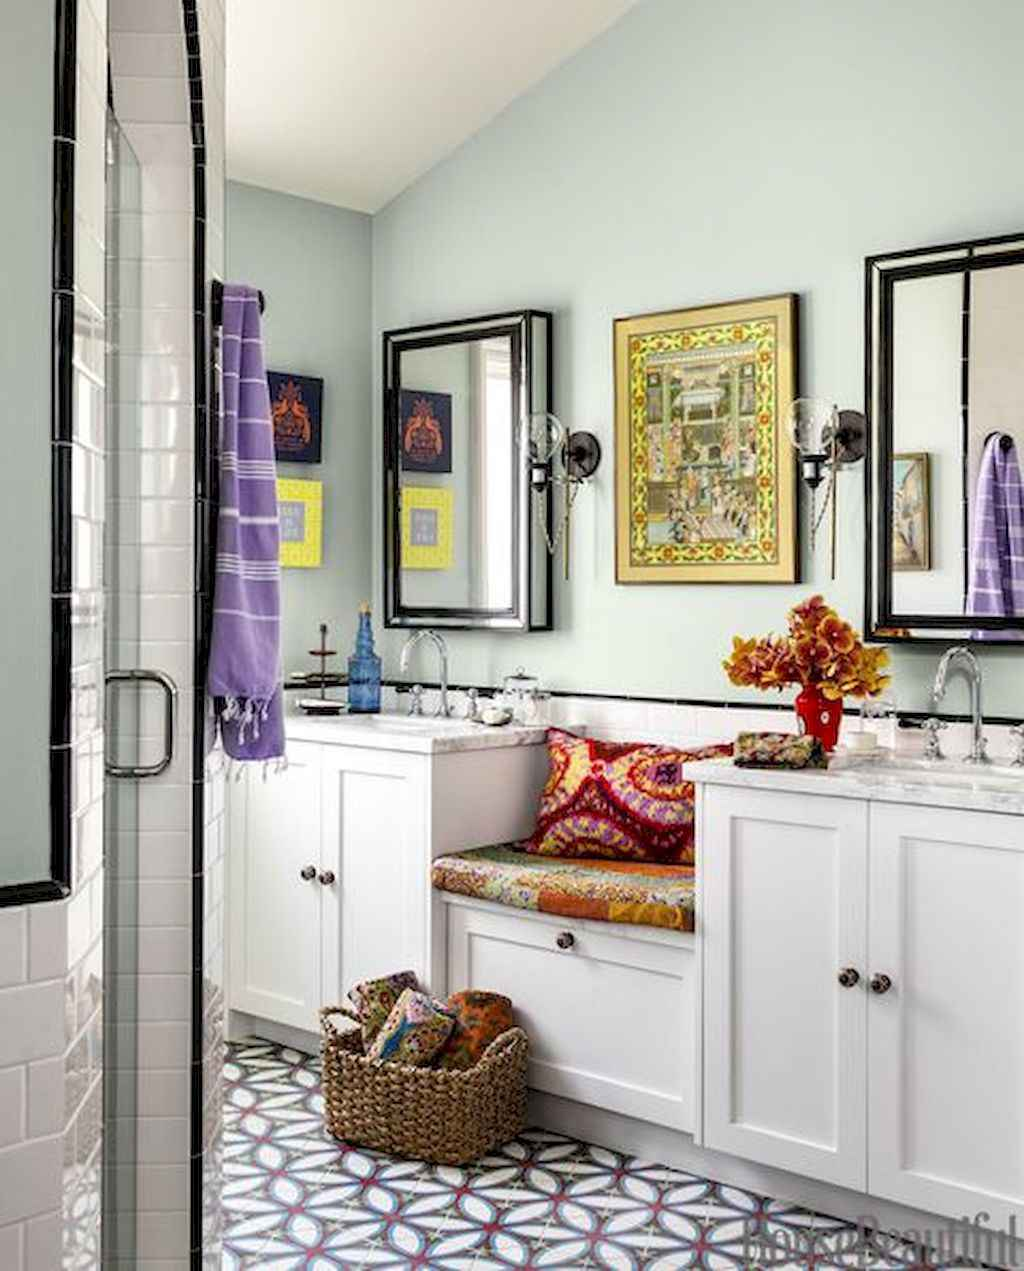 55 cool and relax bathroom design ideas (33)